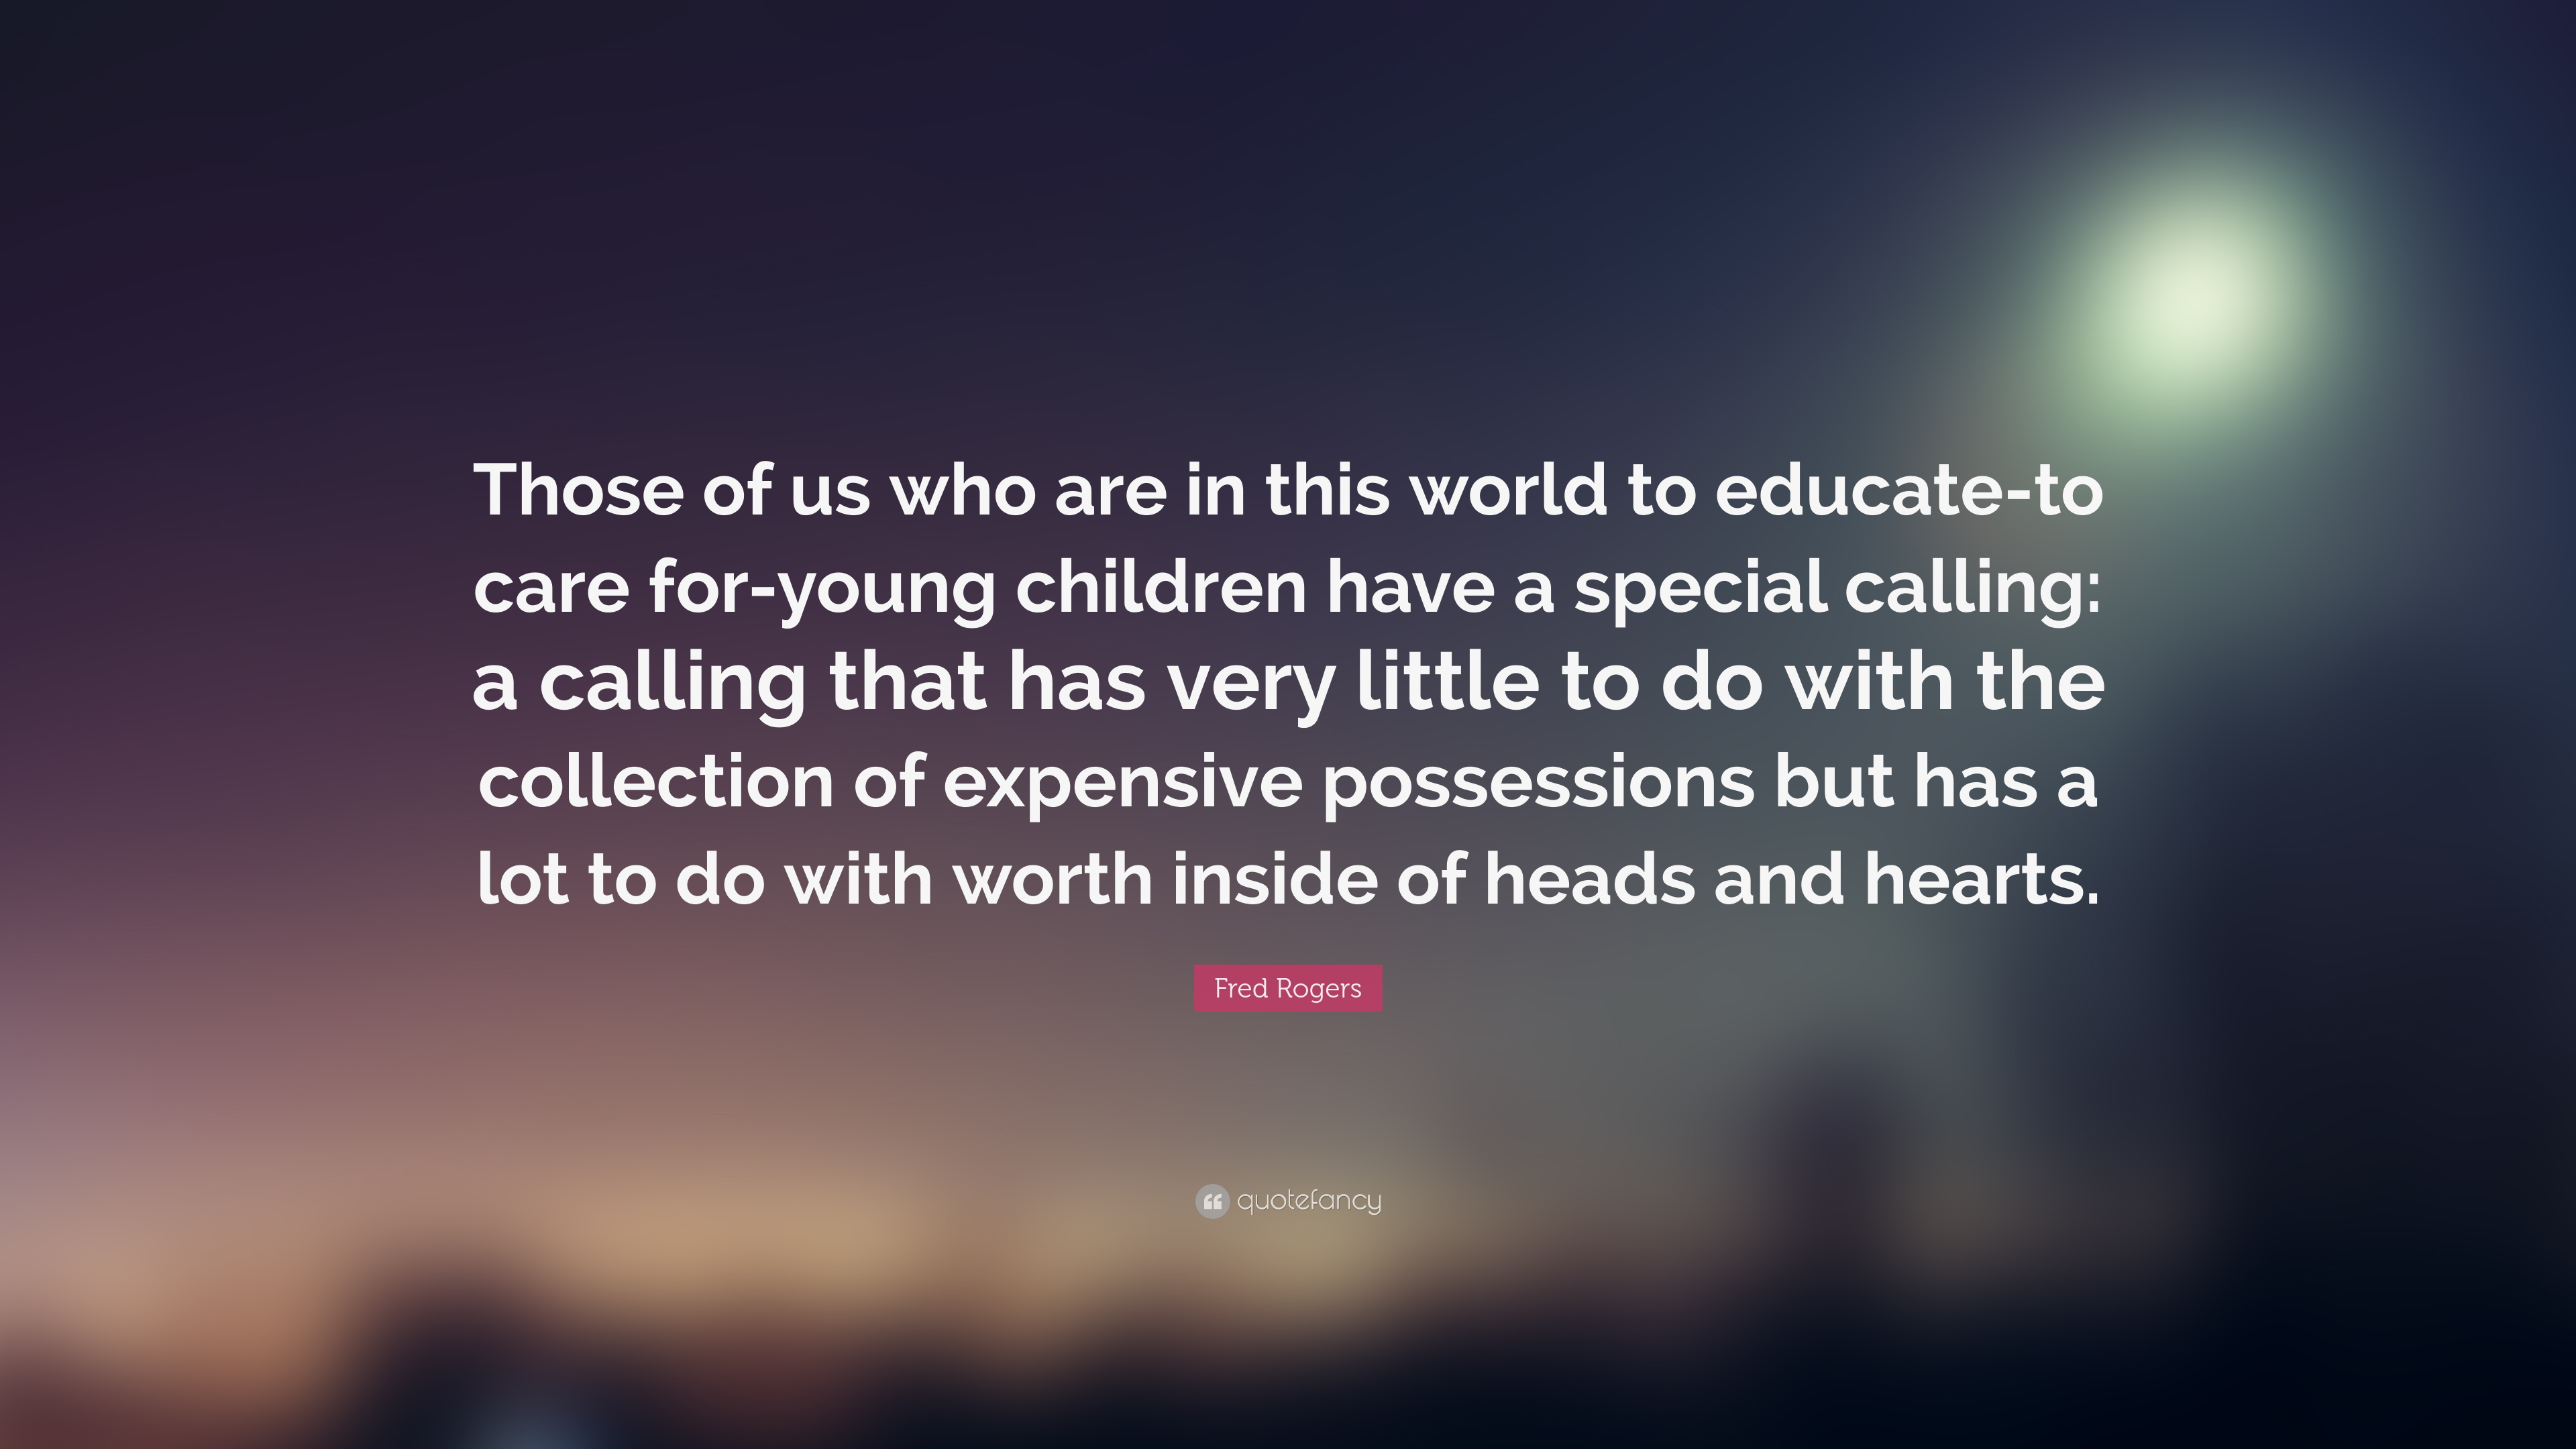 Fred Rogers Quote Those Of Us Who Are In This World To Educate To Care For Young Children Have A Special Calling A Calling That Has Very 10 Wallpapers Quotefancy